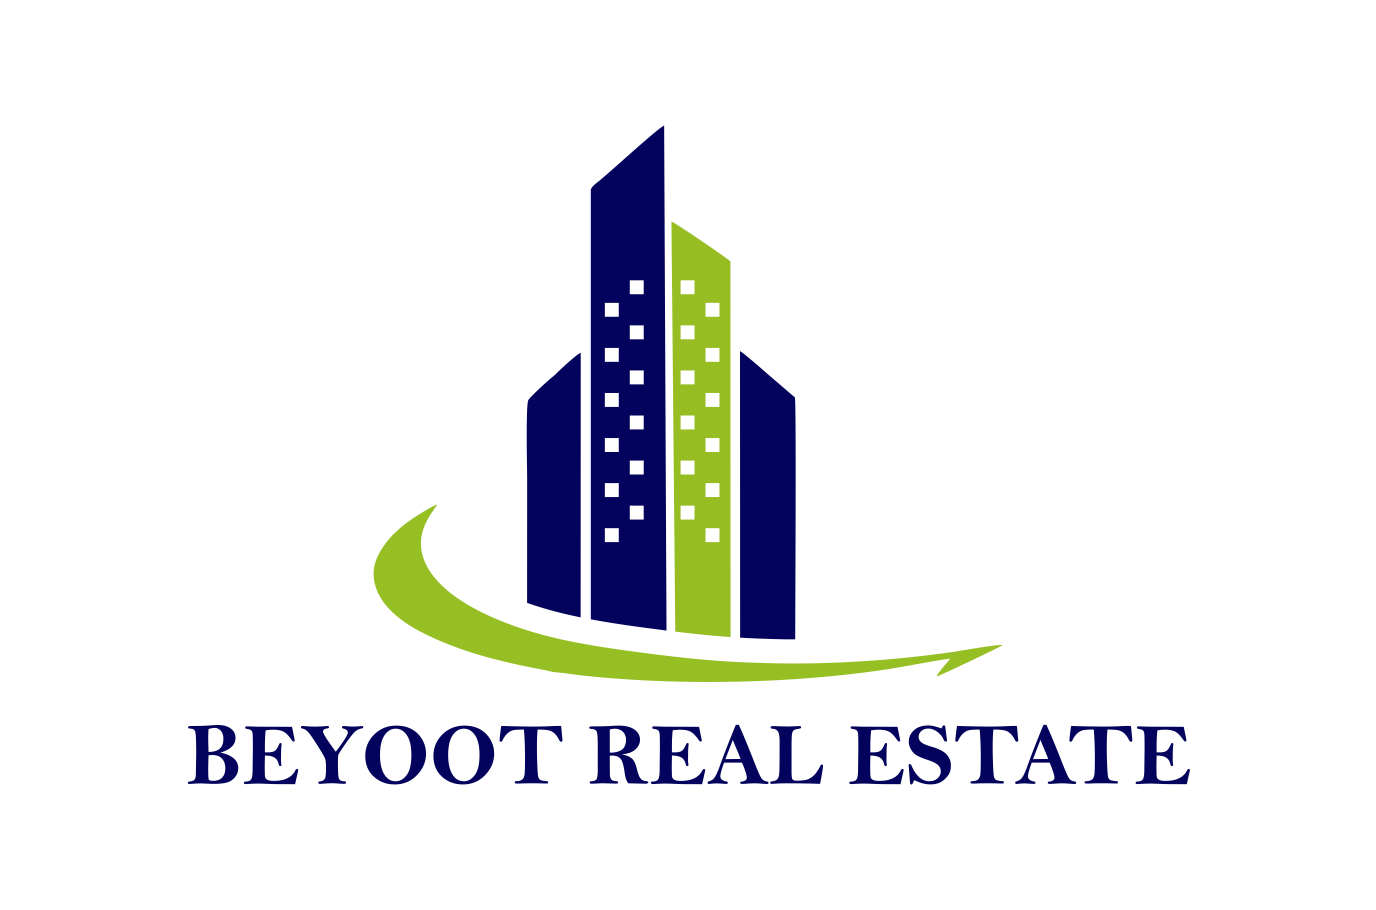 Beyoot Real Estate